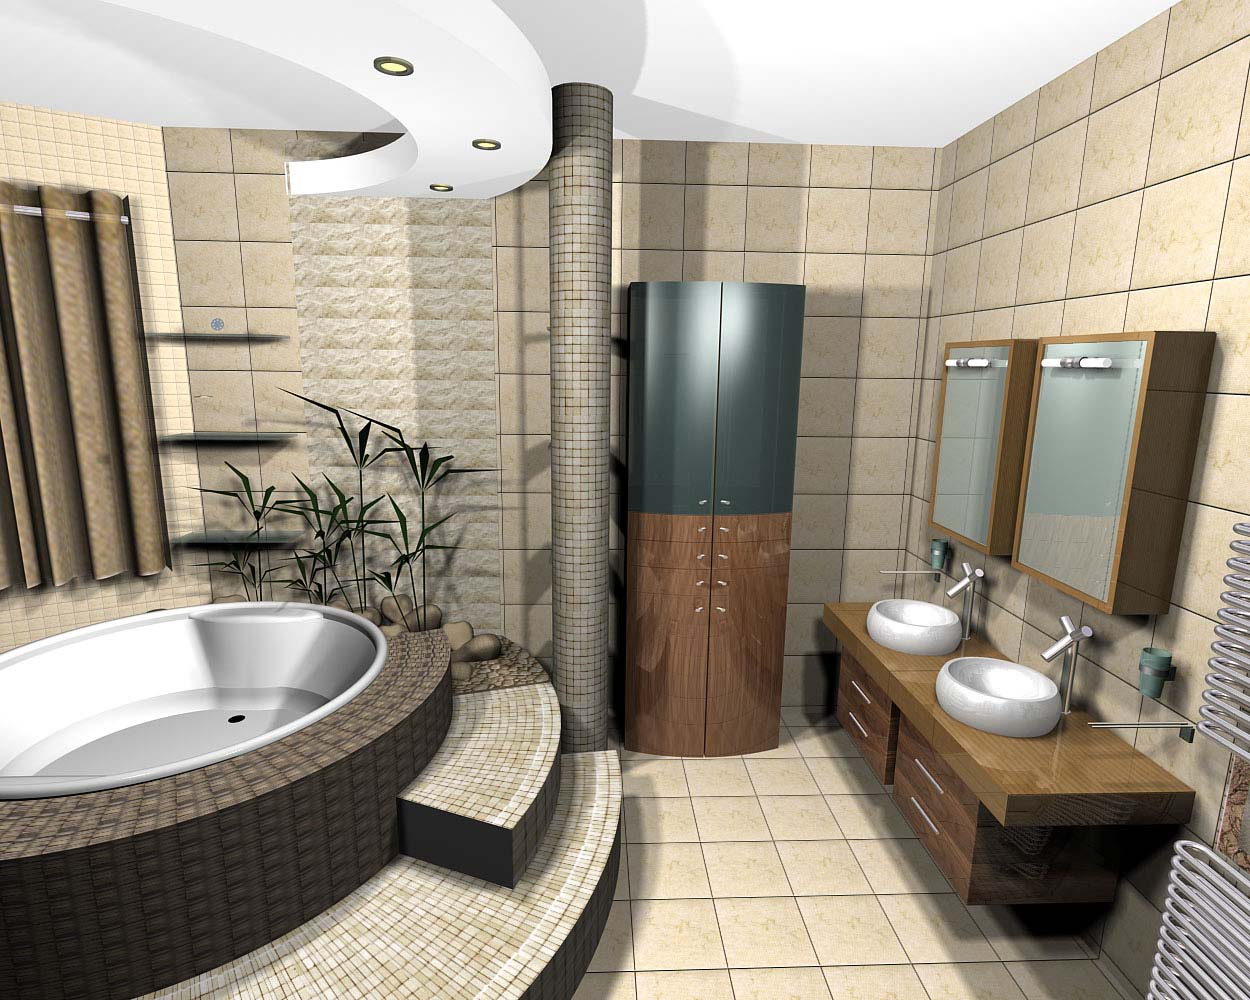 Top Bathroom Remodel Ideas Costs And ROI Details For DIY - Top bathroom remodels